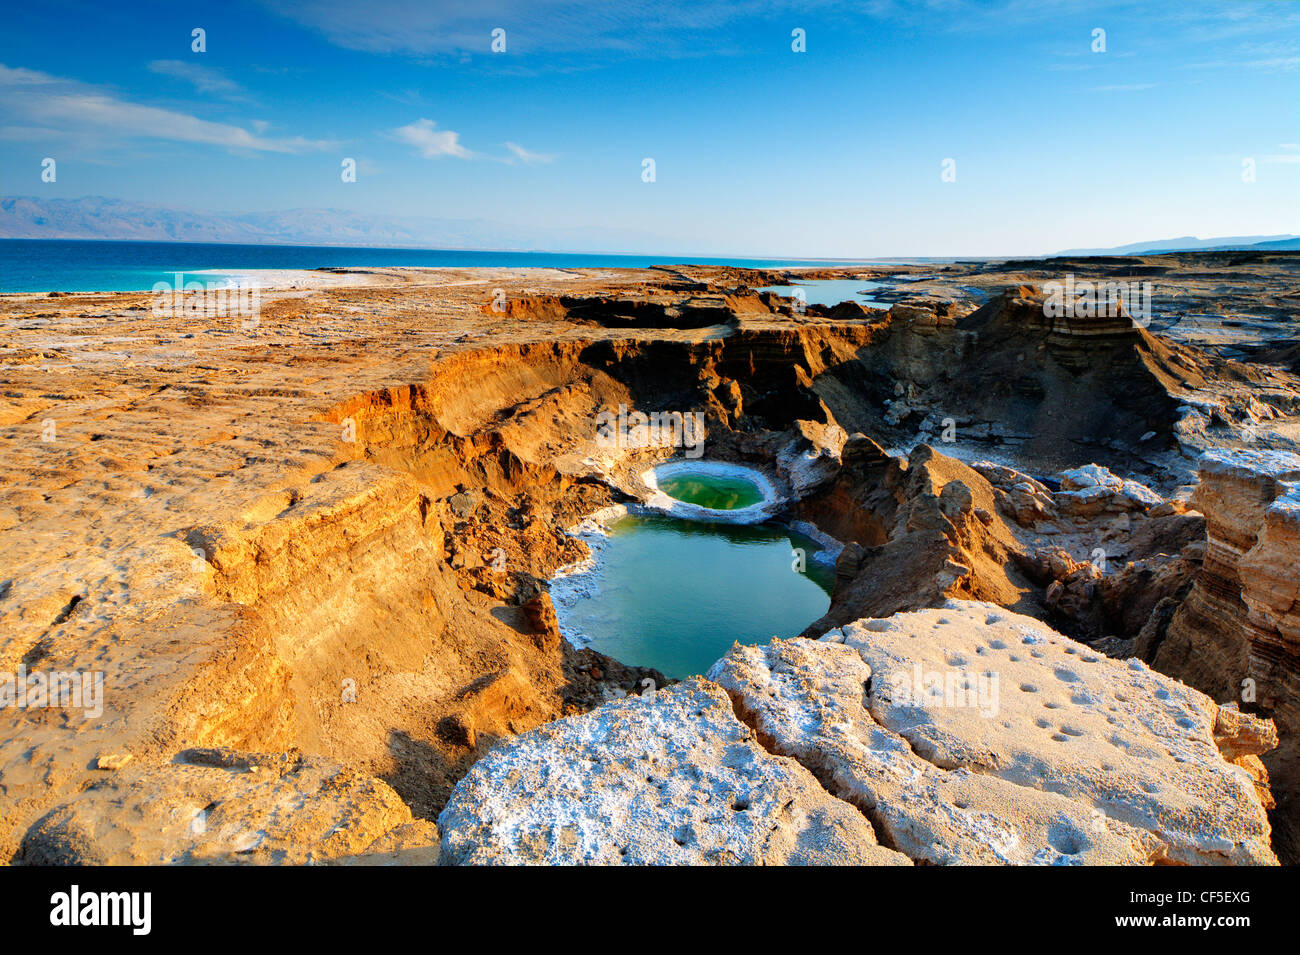 Sink Holes near the Dead Sea in Ein Gedi, Israel. - Stock Image